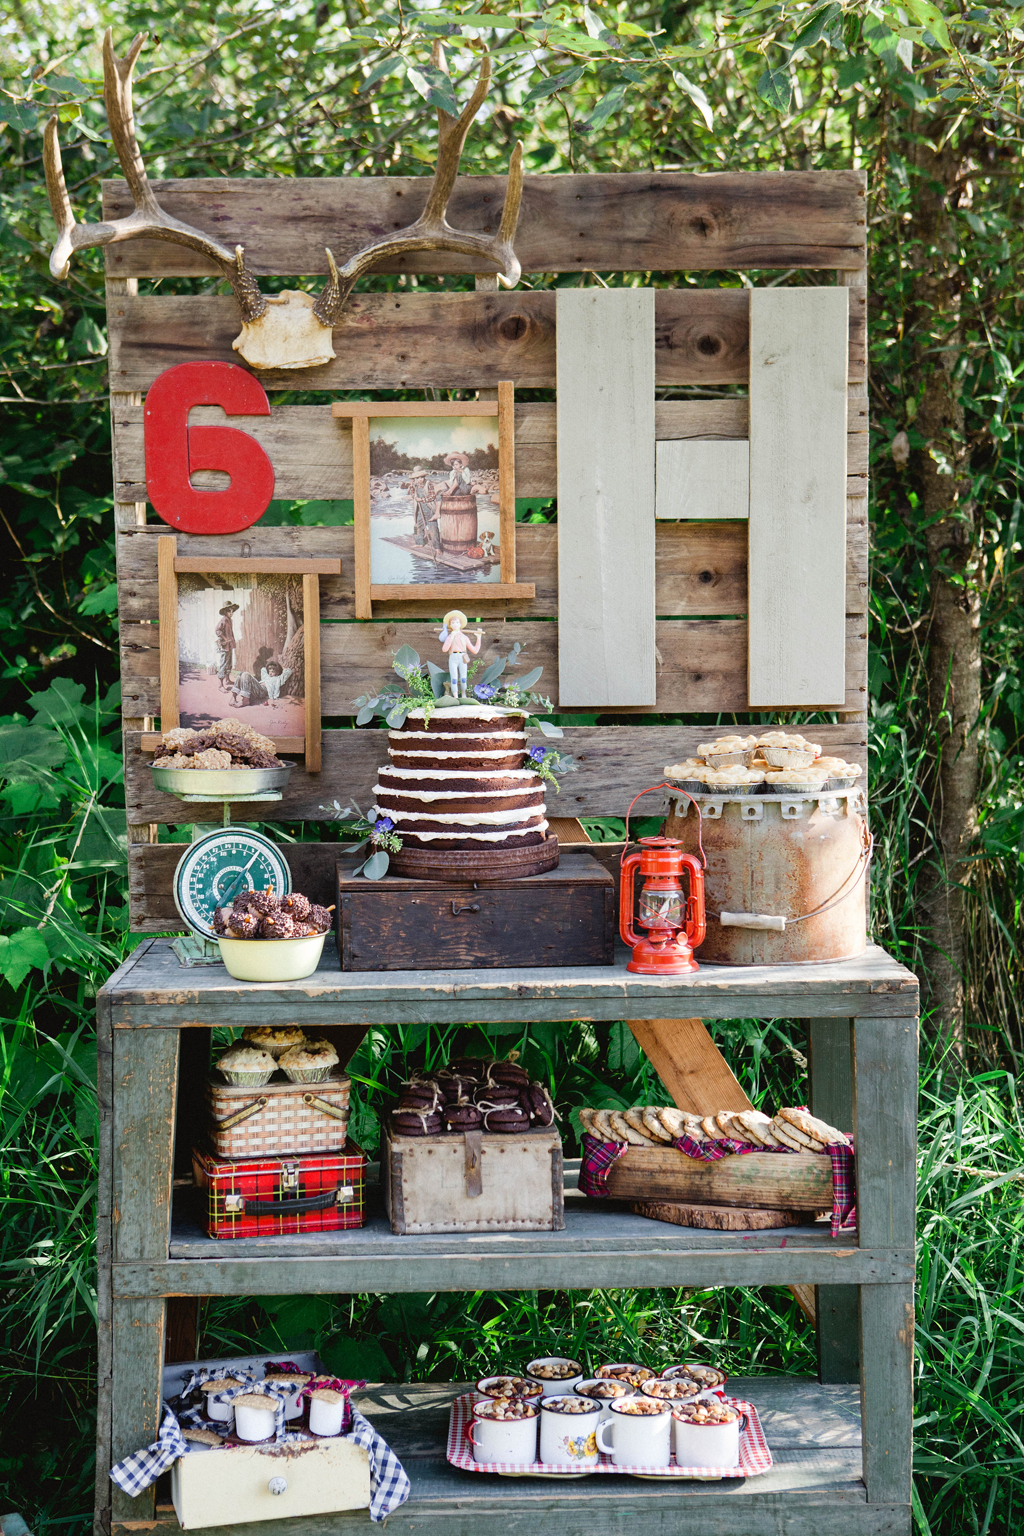 From kara s party ideas rustic dessert table display designed by - Adventure And Outdoors Themed Birthday Party Dessert Table We Love The Wood Pallet Backdrop